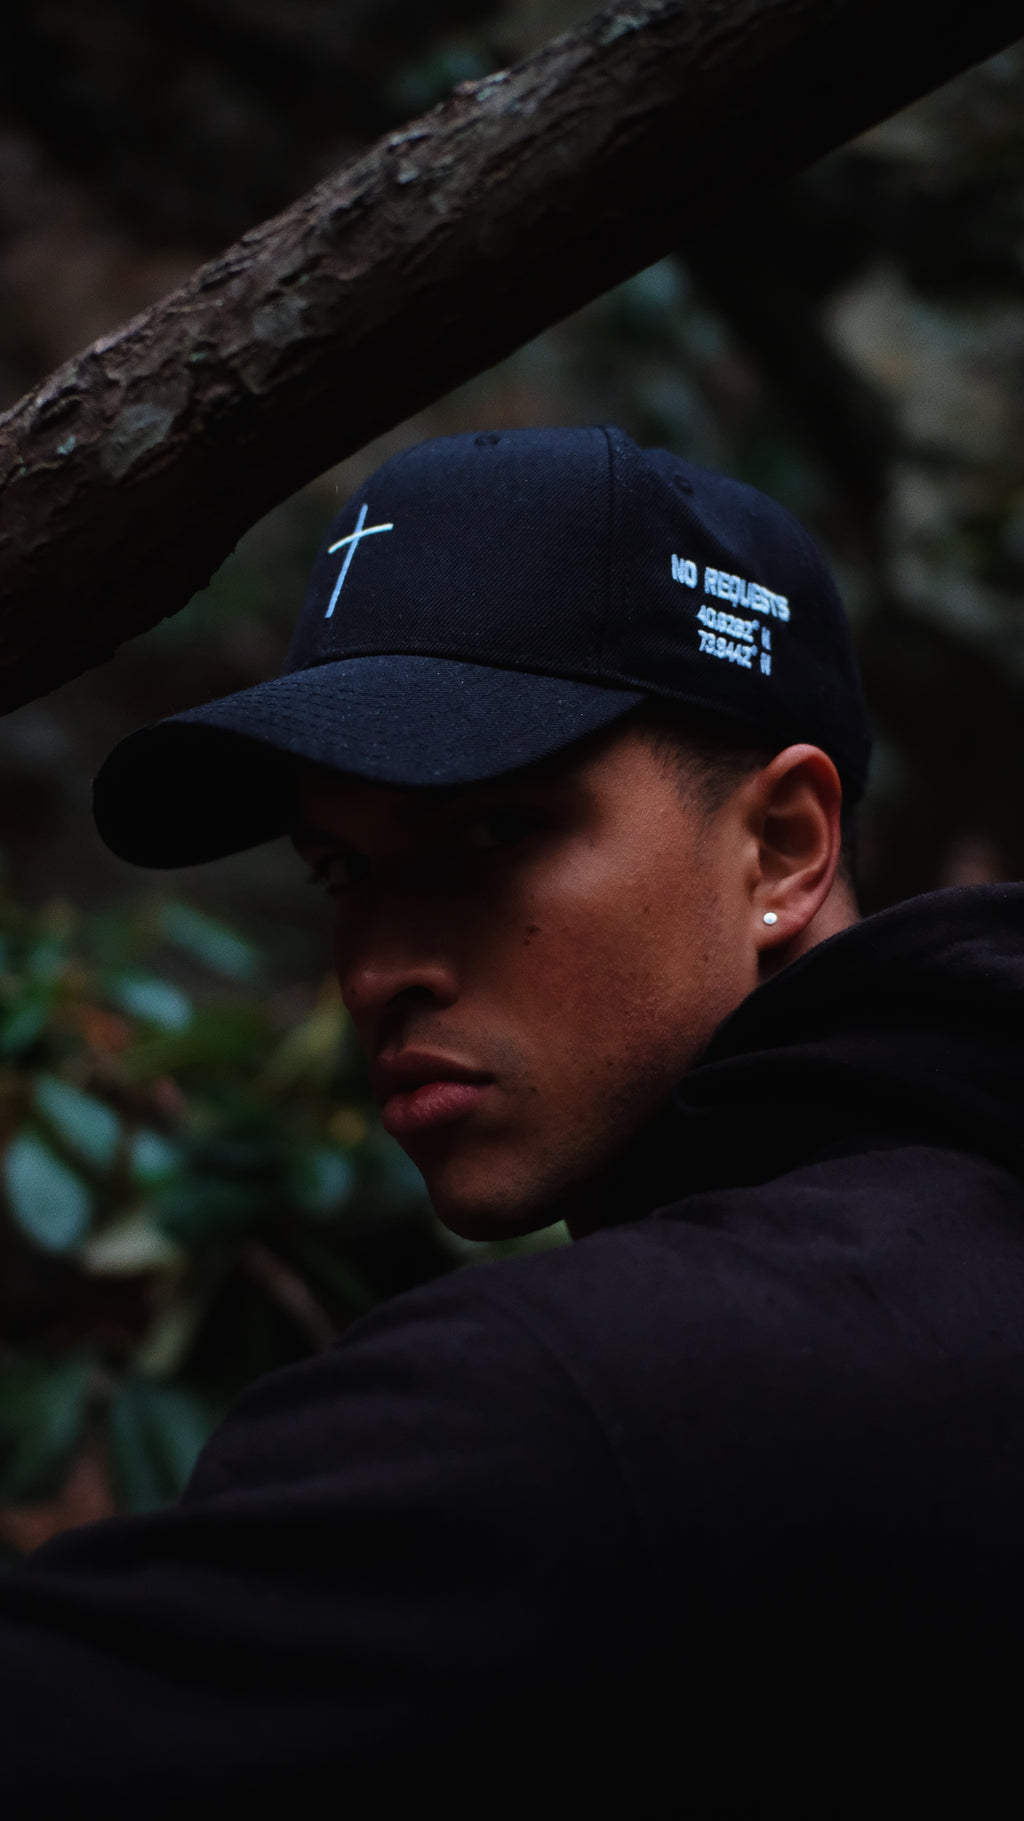 Embroidered Cross Structured 6 Panel Unisex Dad Hat. Adjustable Snapback So One Size Fits All